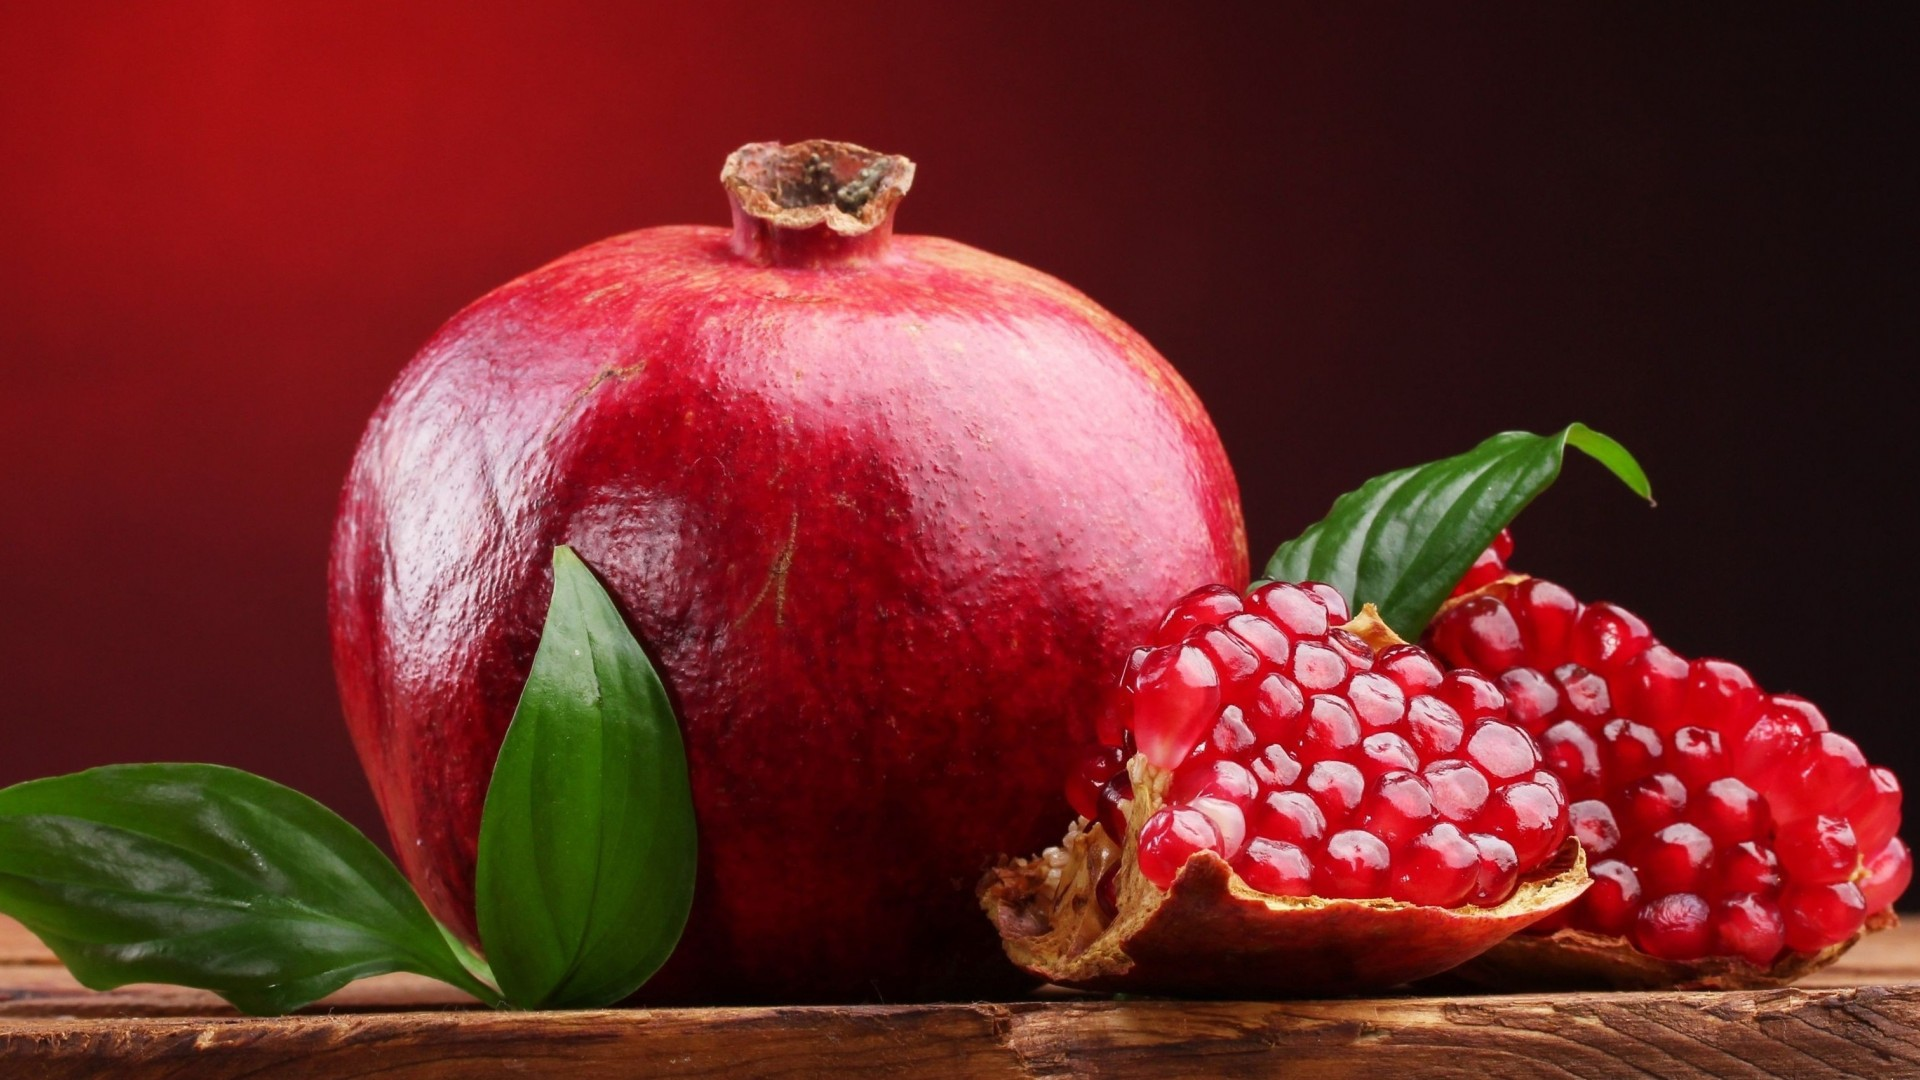 Food___Berries_and_fruits_and_nuts_The_pomegranate_fruit_082293_.jpg